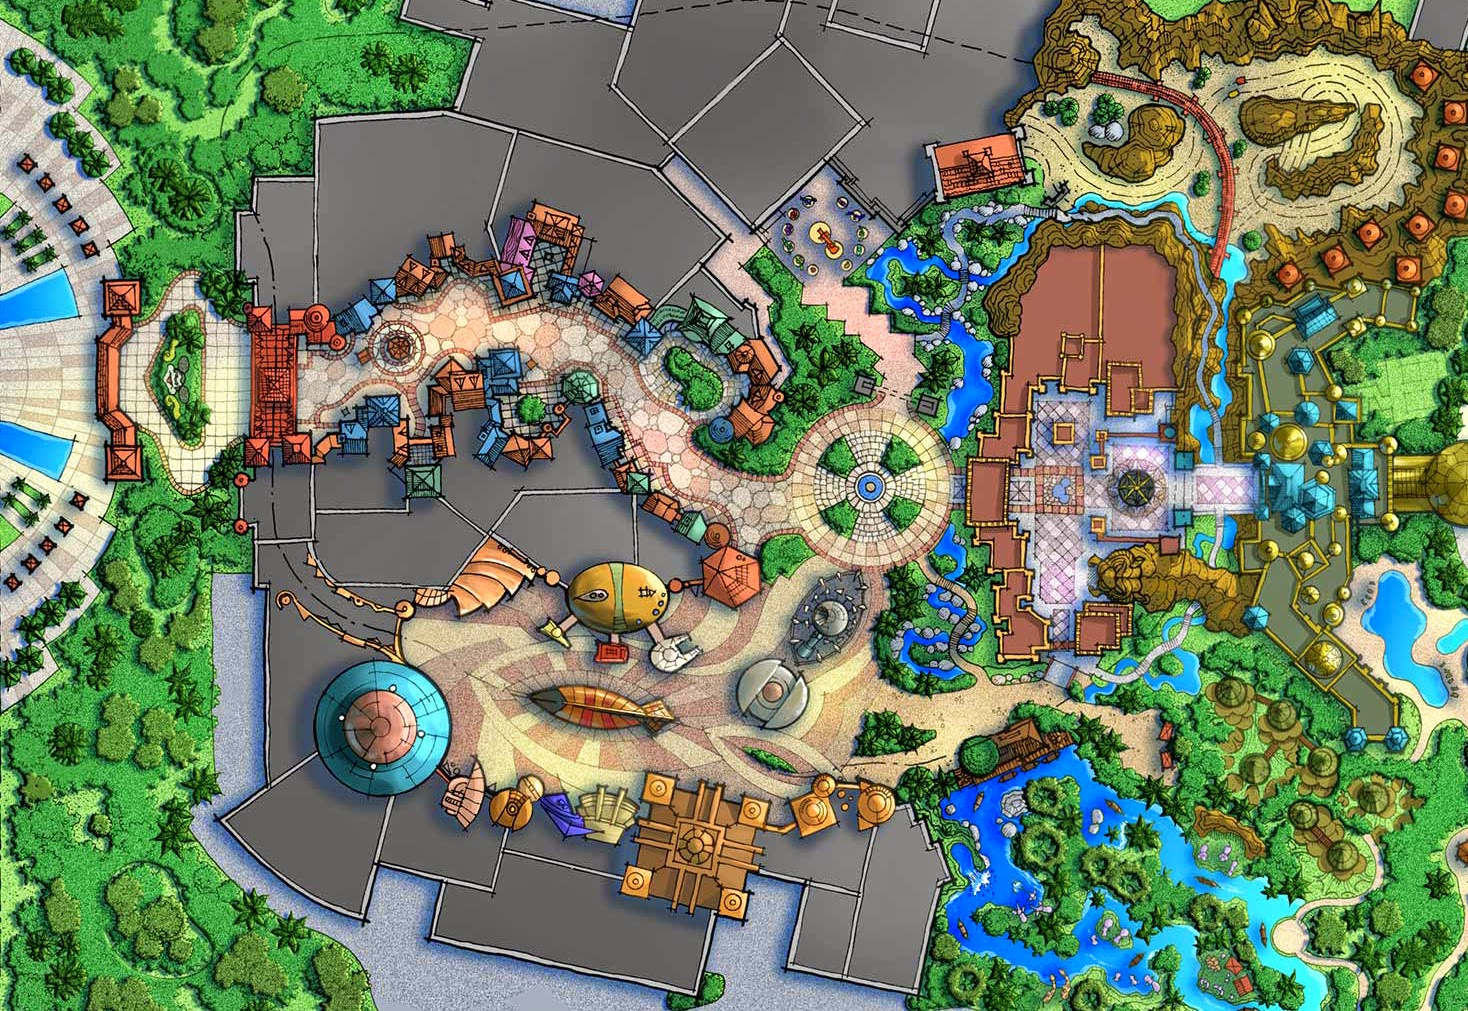 Insights And Sounds August - Disneyland brazil map